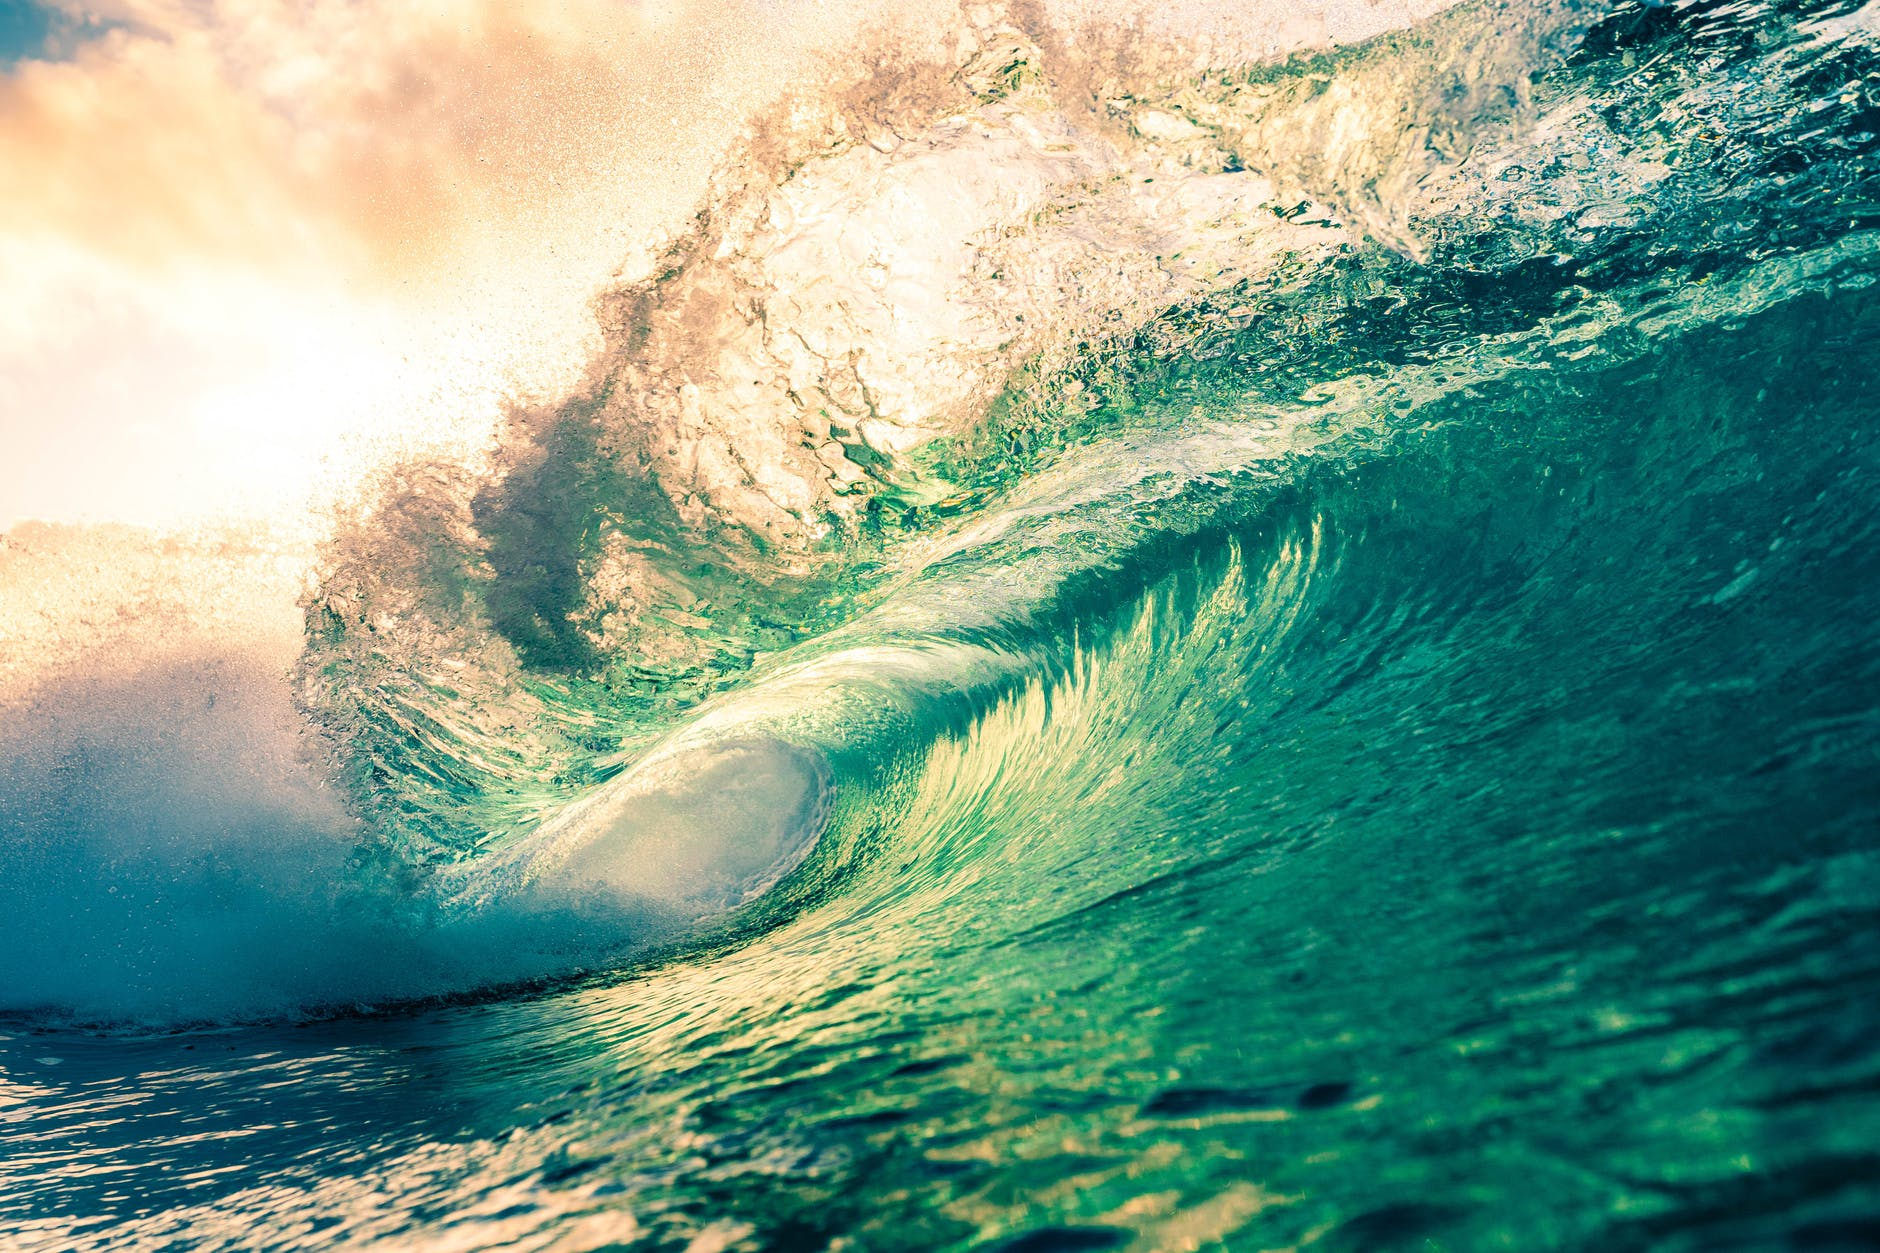 scenic turquoise sea wave under bright sunny sky